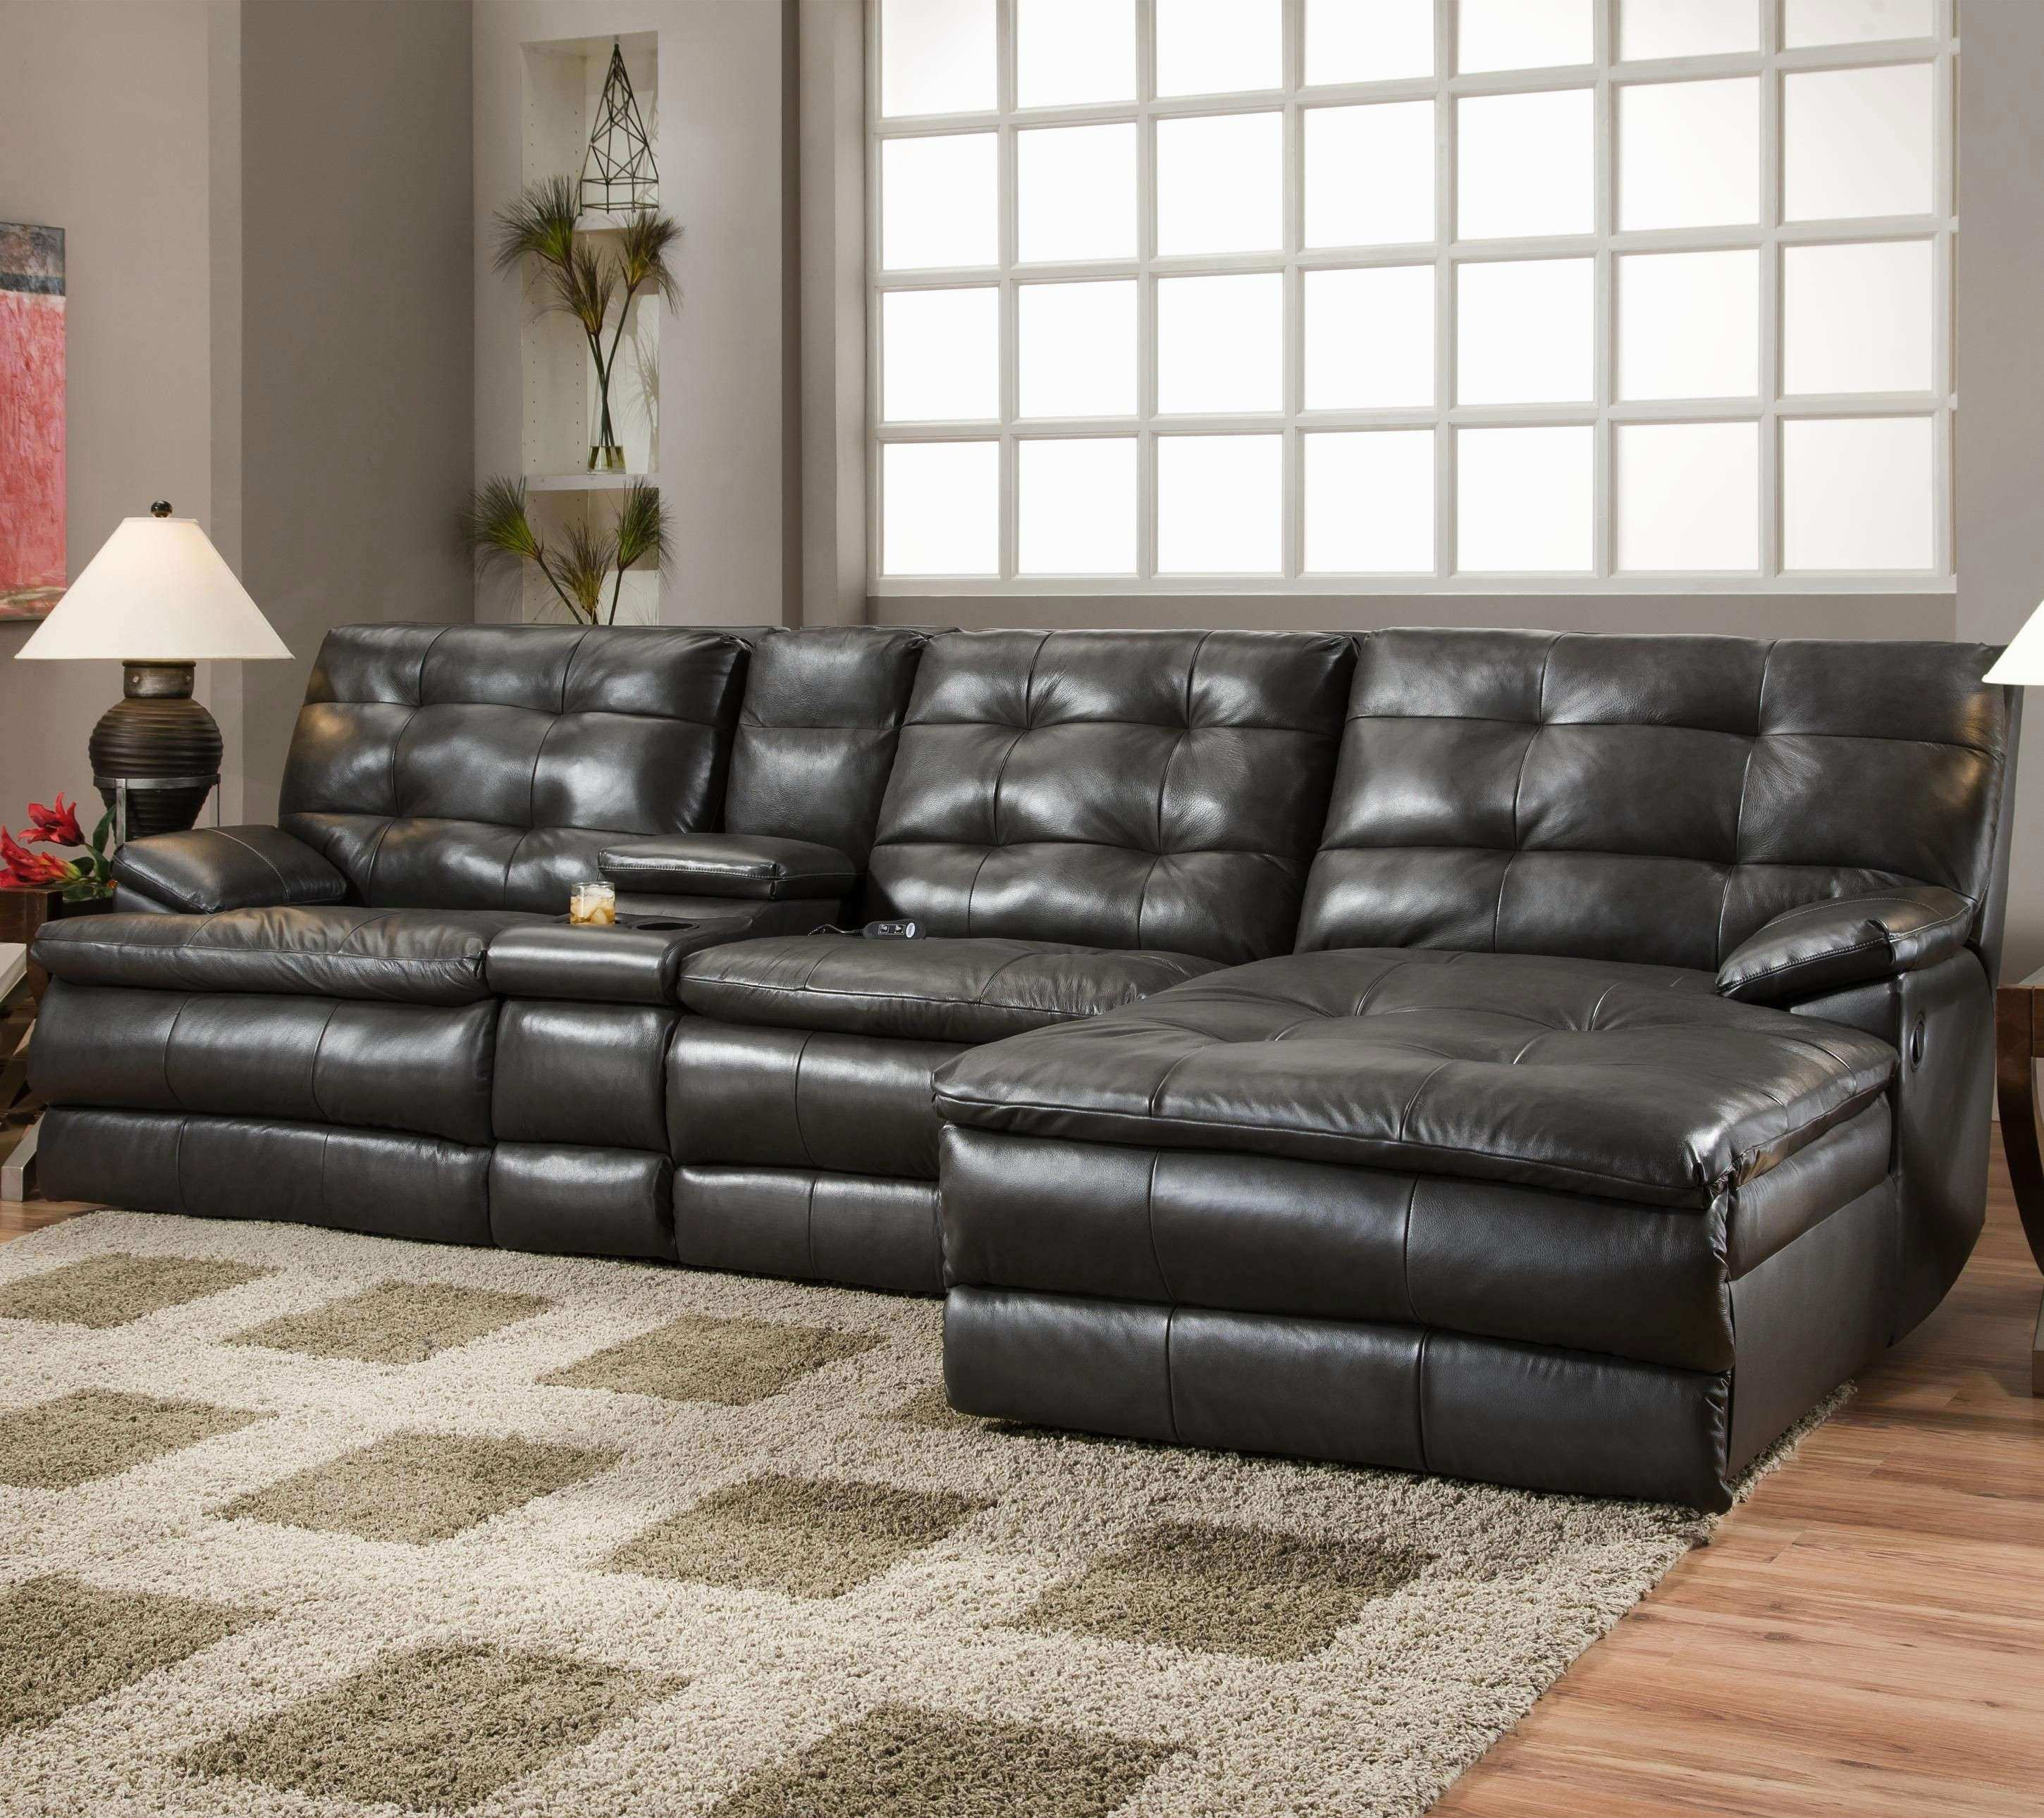 Living Room Wall New Home Decorating Shows Fresh sofa Fy sofa Fy